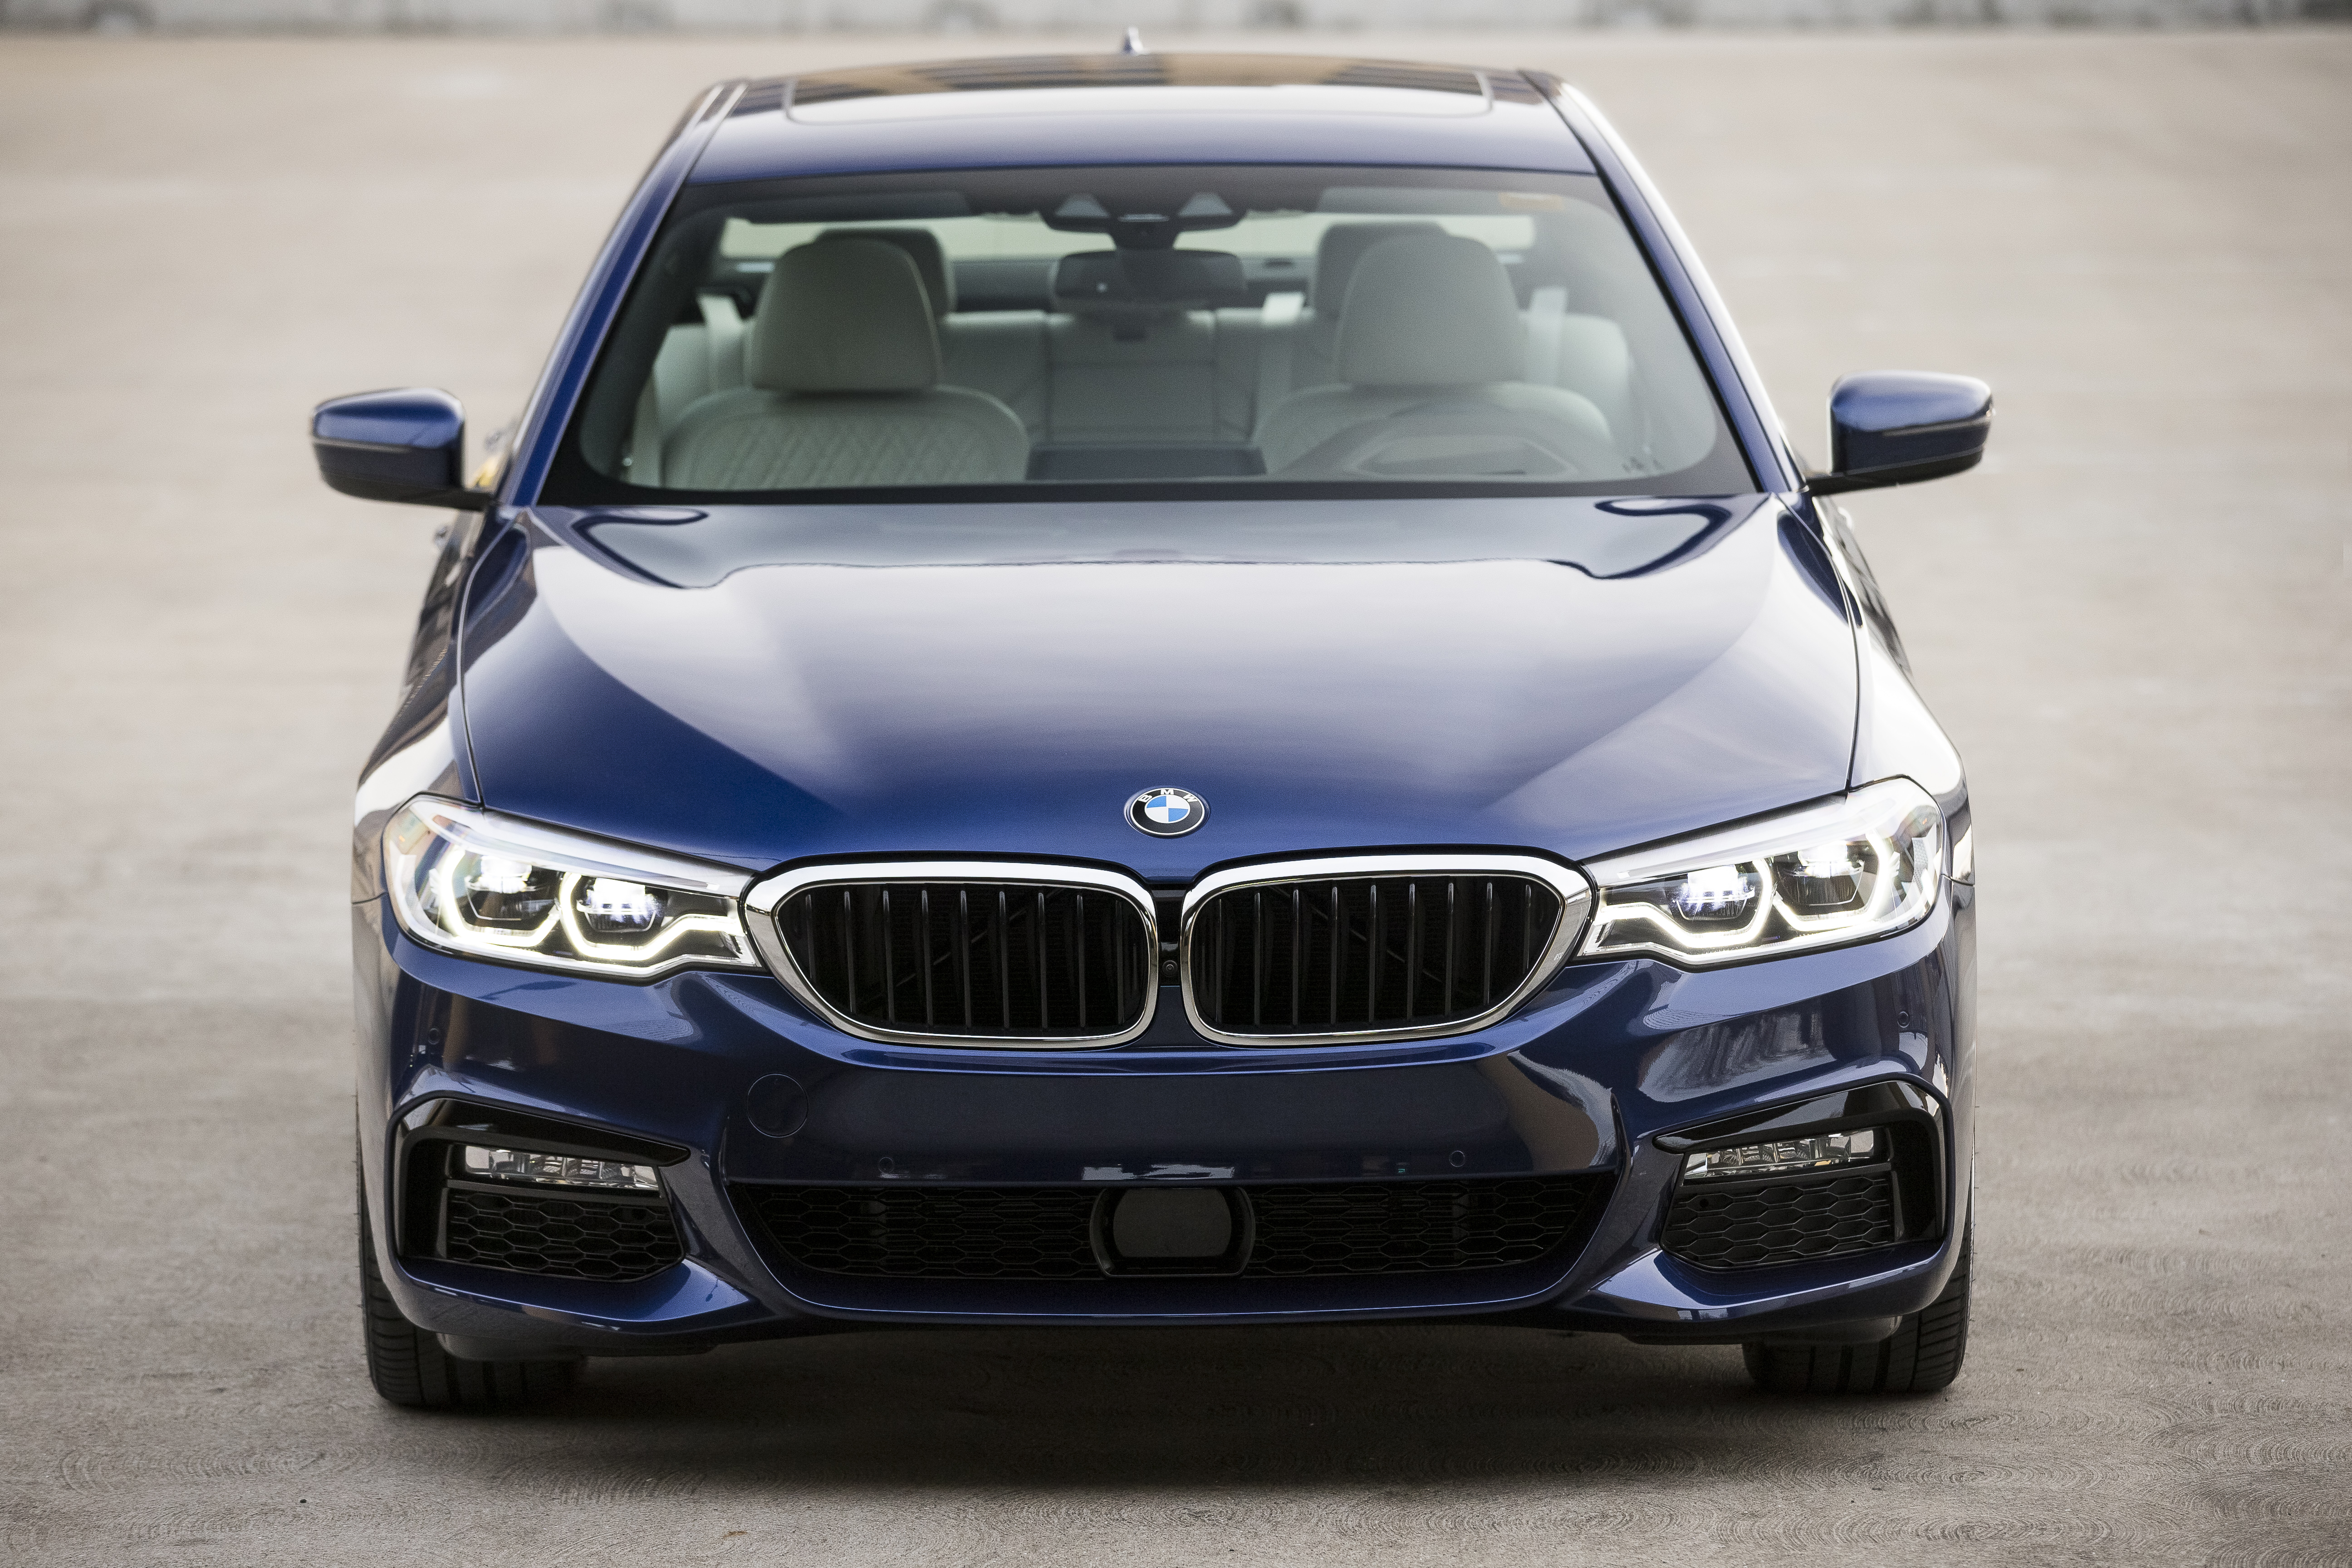 2017 bmw 540i is faster and smarter than ever the drive 2017 bmw 540i is faster and smarter than ever the drive